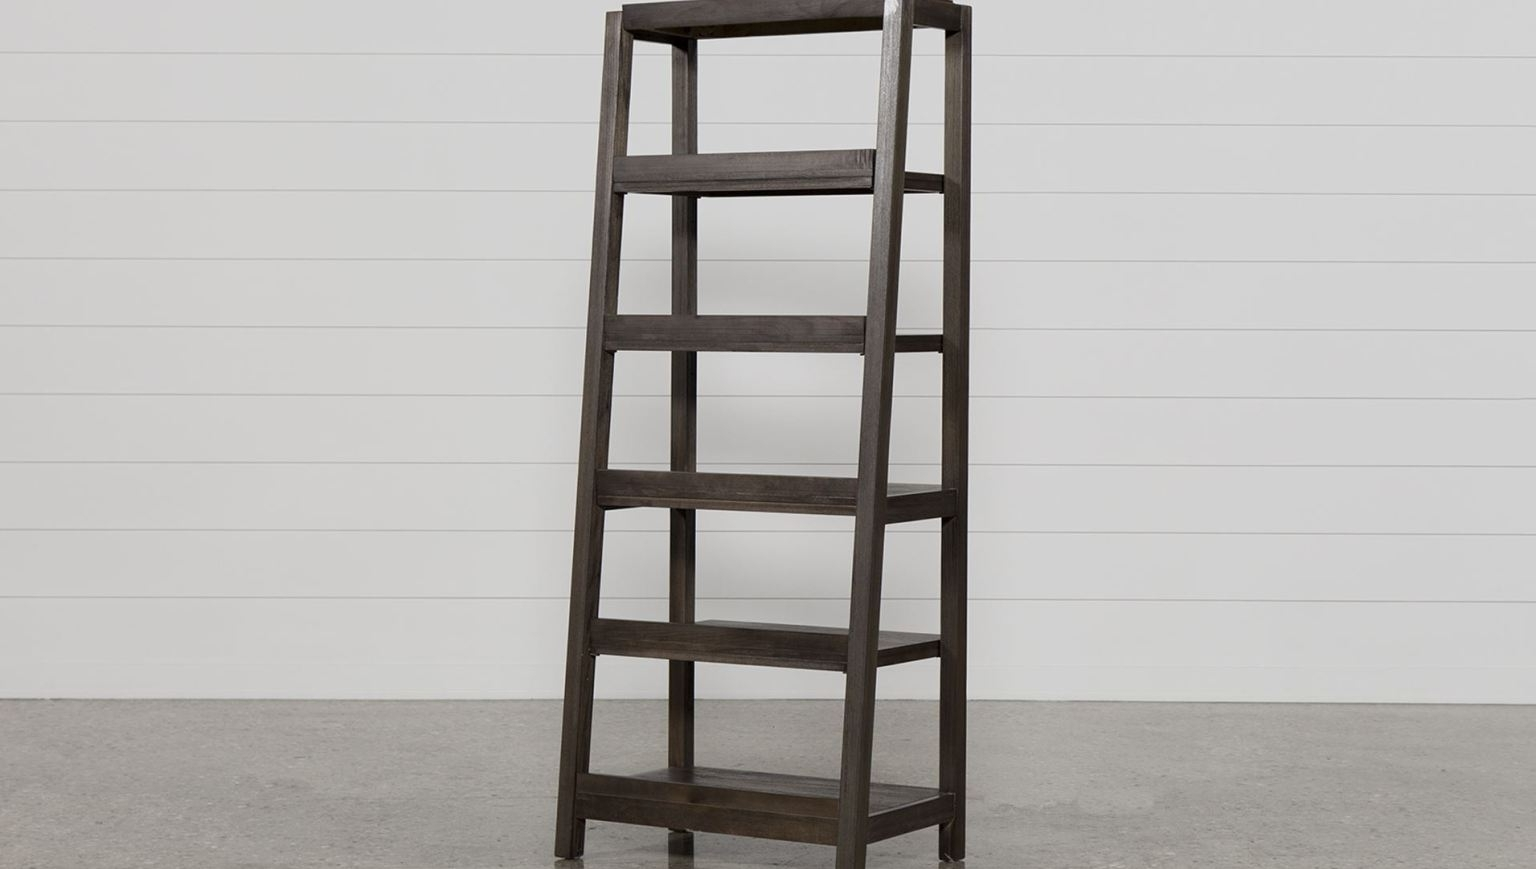 Terraria Bookcases Regarding Best And Newest Shelf : Lack Series Ikea Stainless Steel Bookcase Bookcase (View 7 of 15)